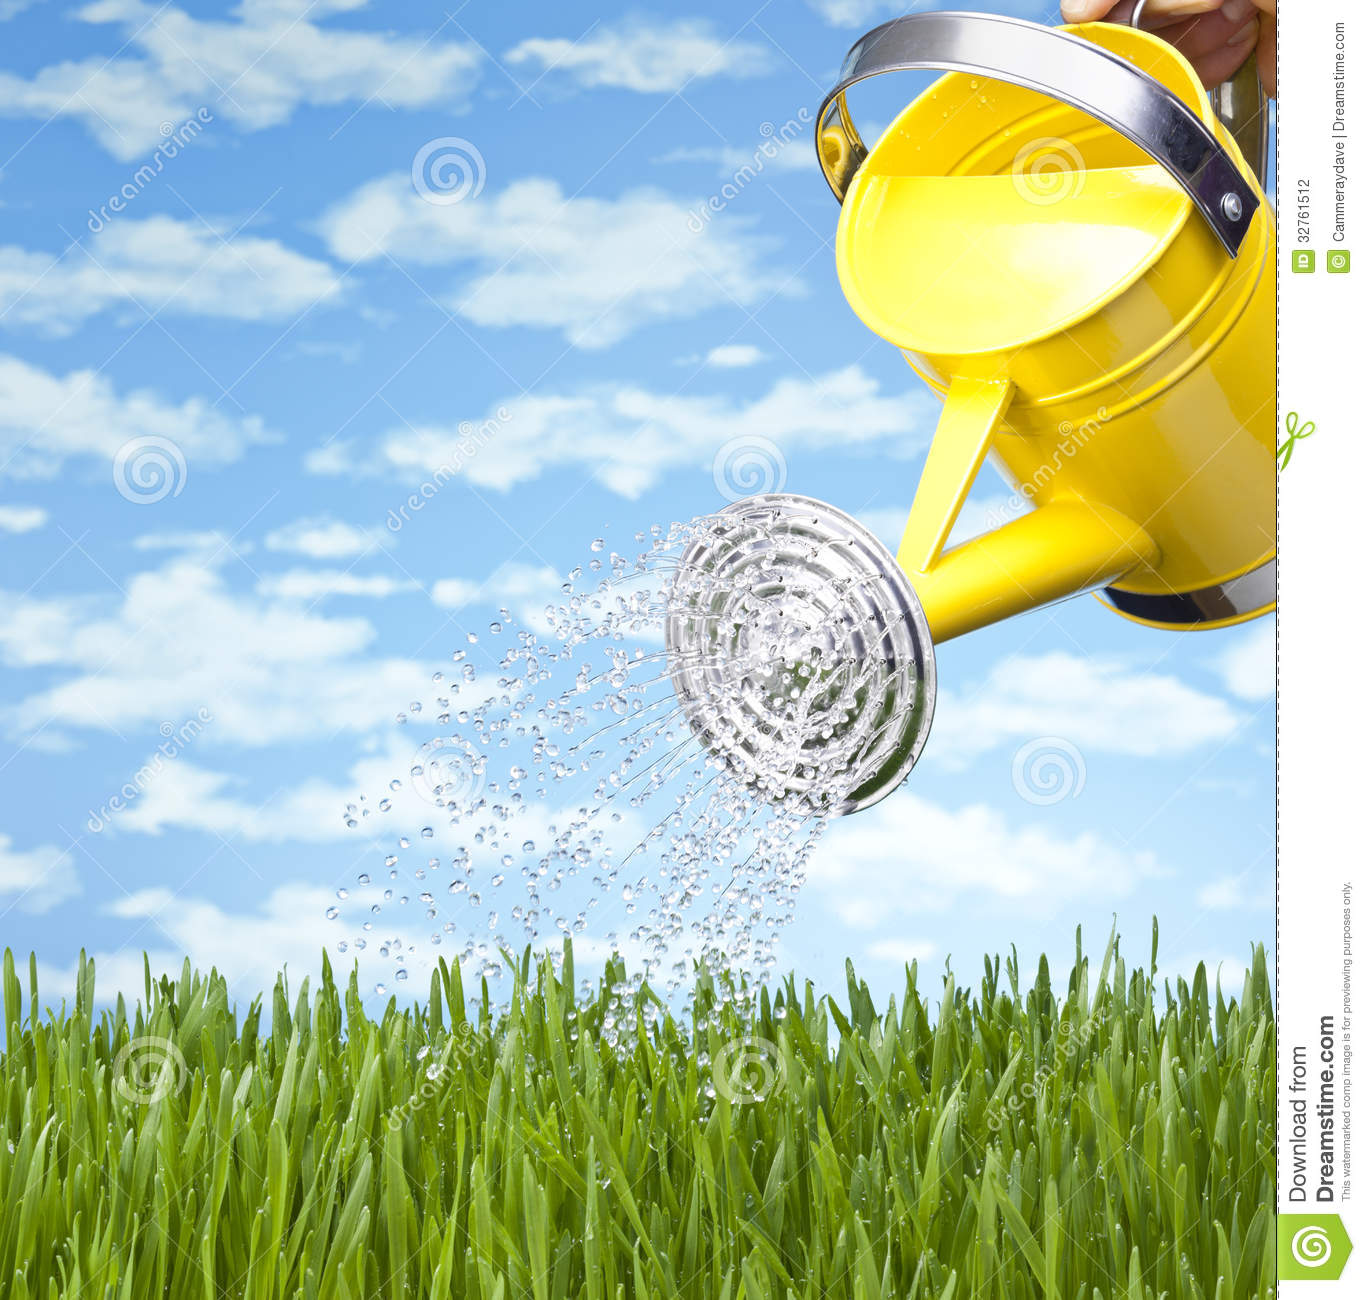 Summer Watering Can Grass Stock Photography Image 32761512